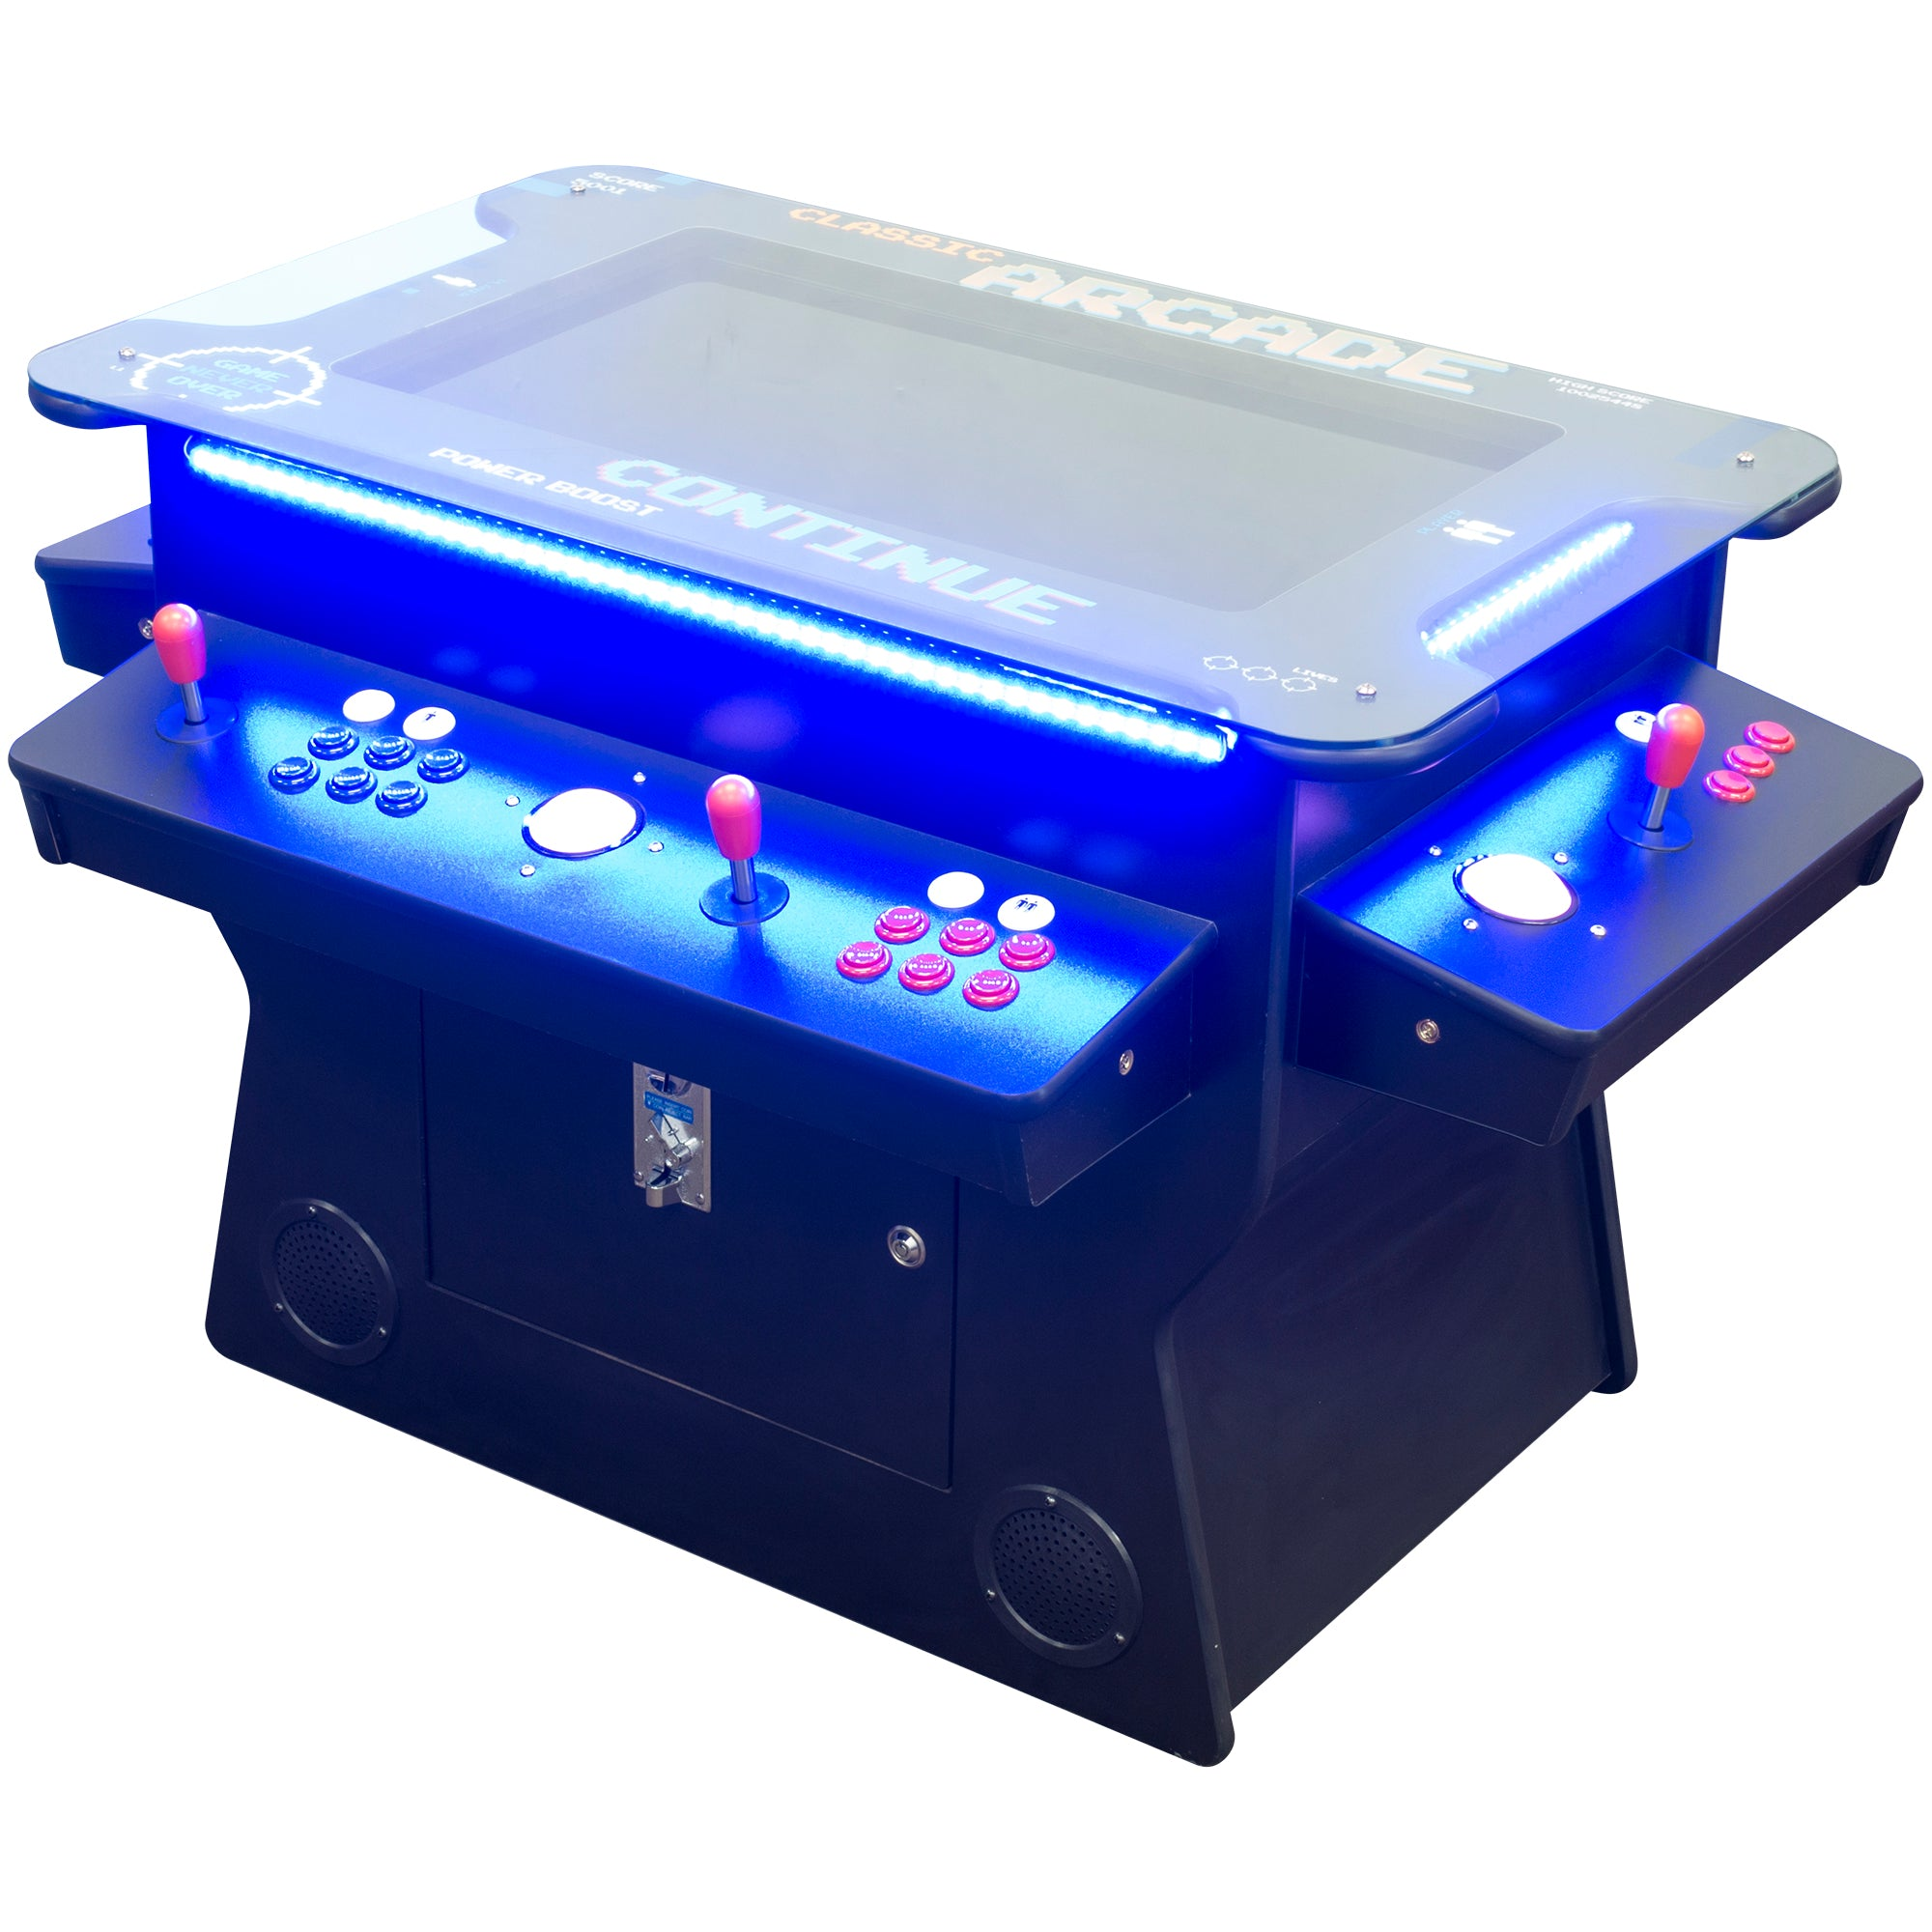 "2 Player 3 Sided 32"" Tilt Screen Cocktail Arcade with LED Lights and Stools"